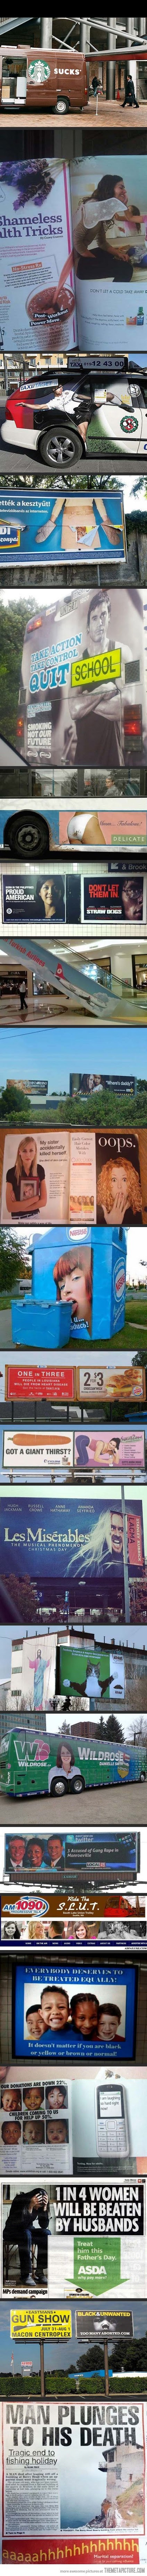 Funny Unfortunate Adverts Collection Joke Picture